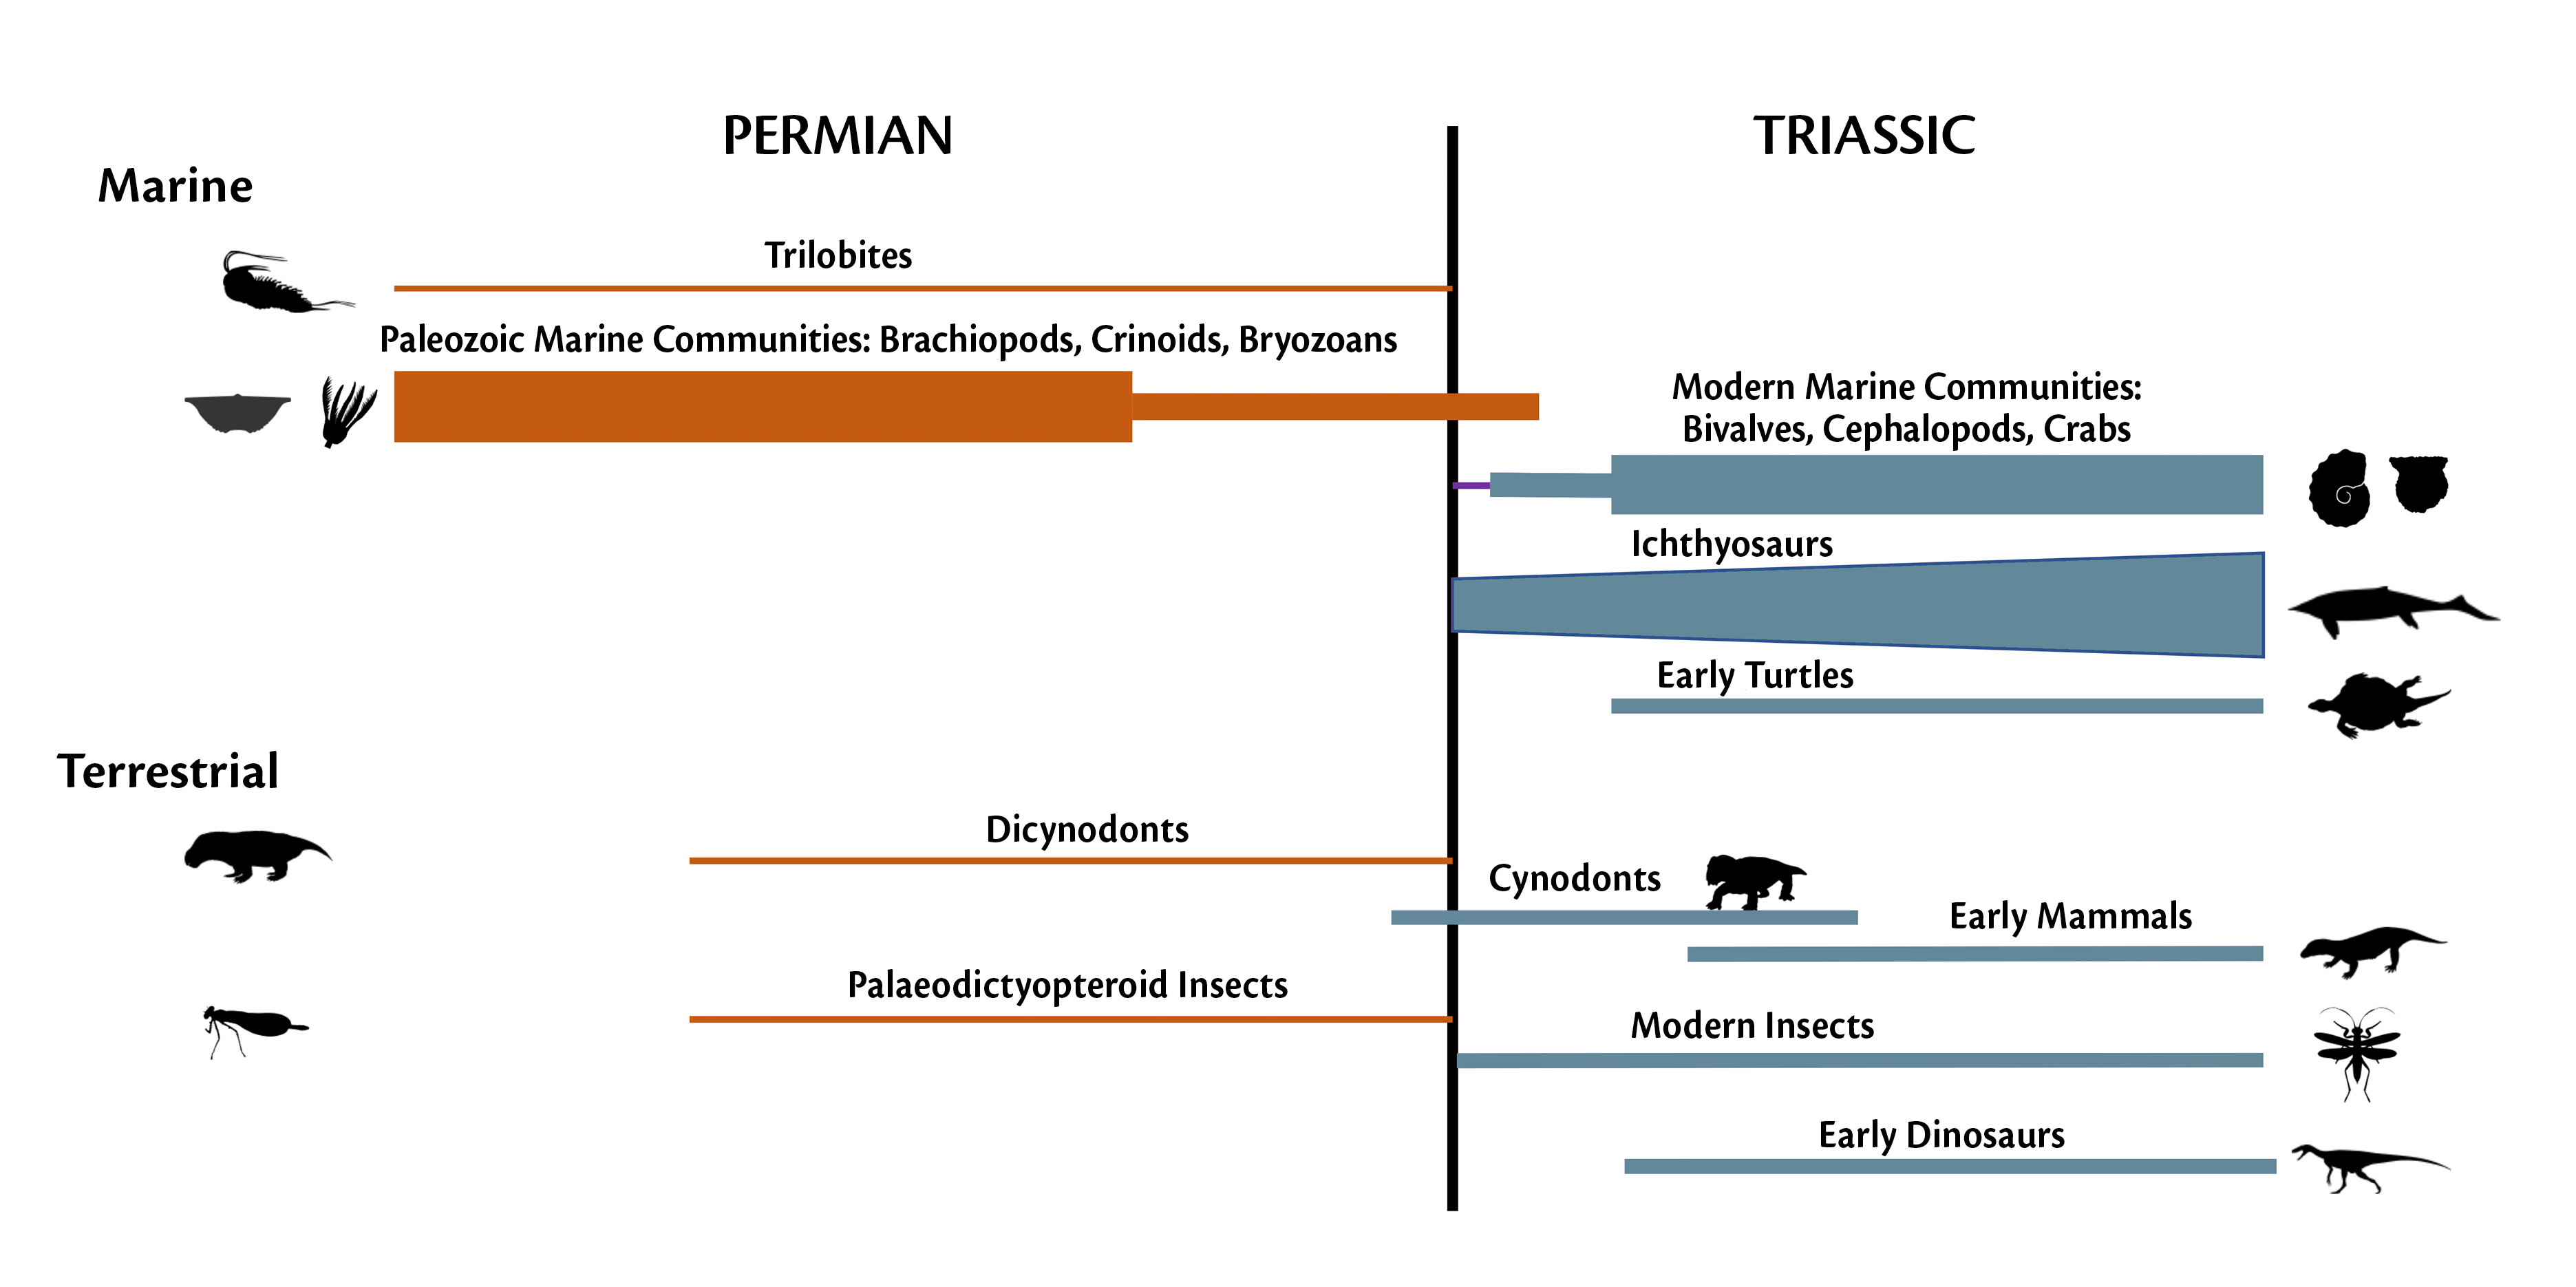 Figure: The disappearance of some Permian groups and appearance of some modern groups. Images from Phylopict.org.